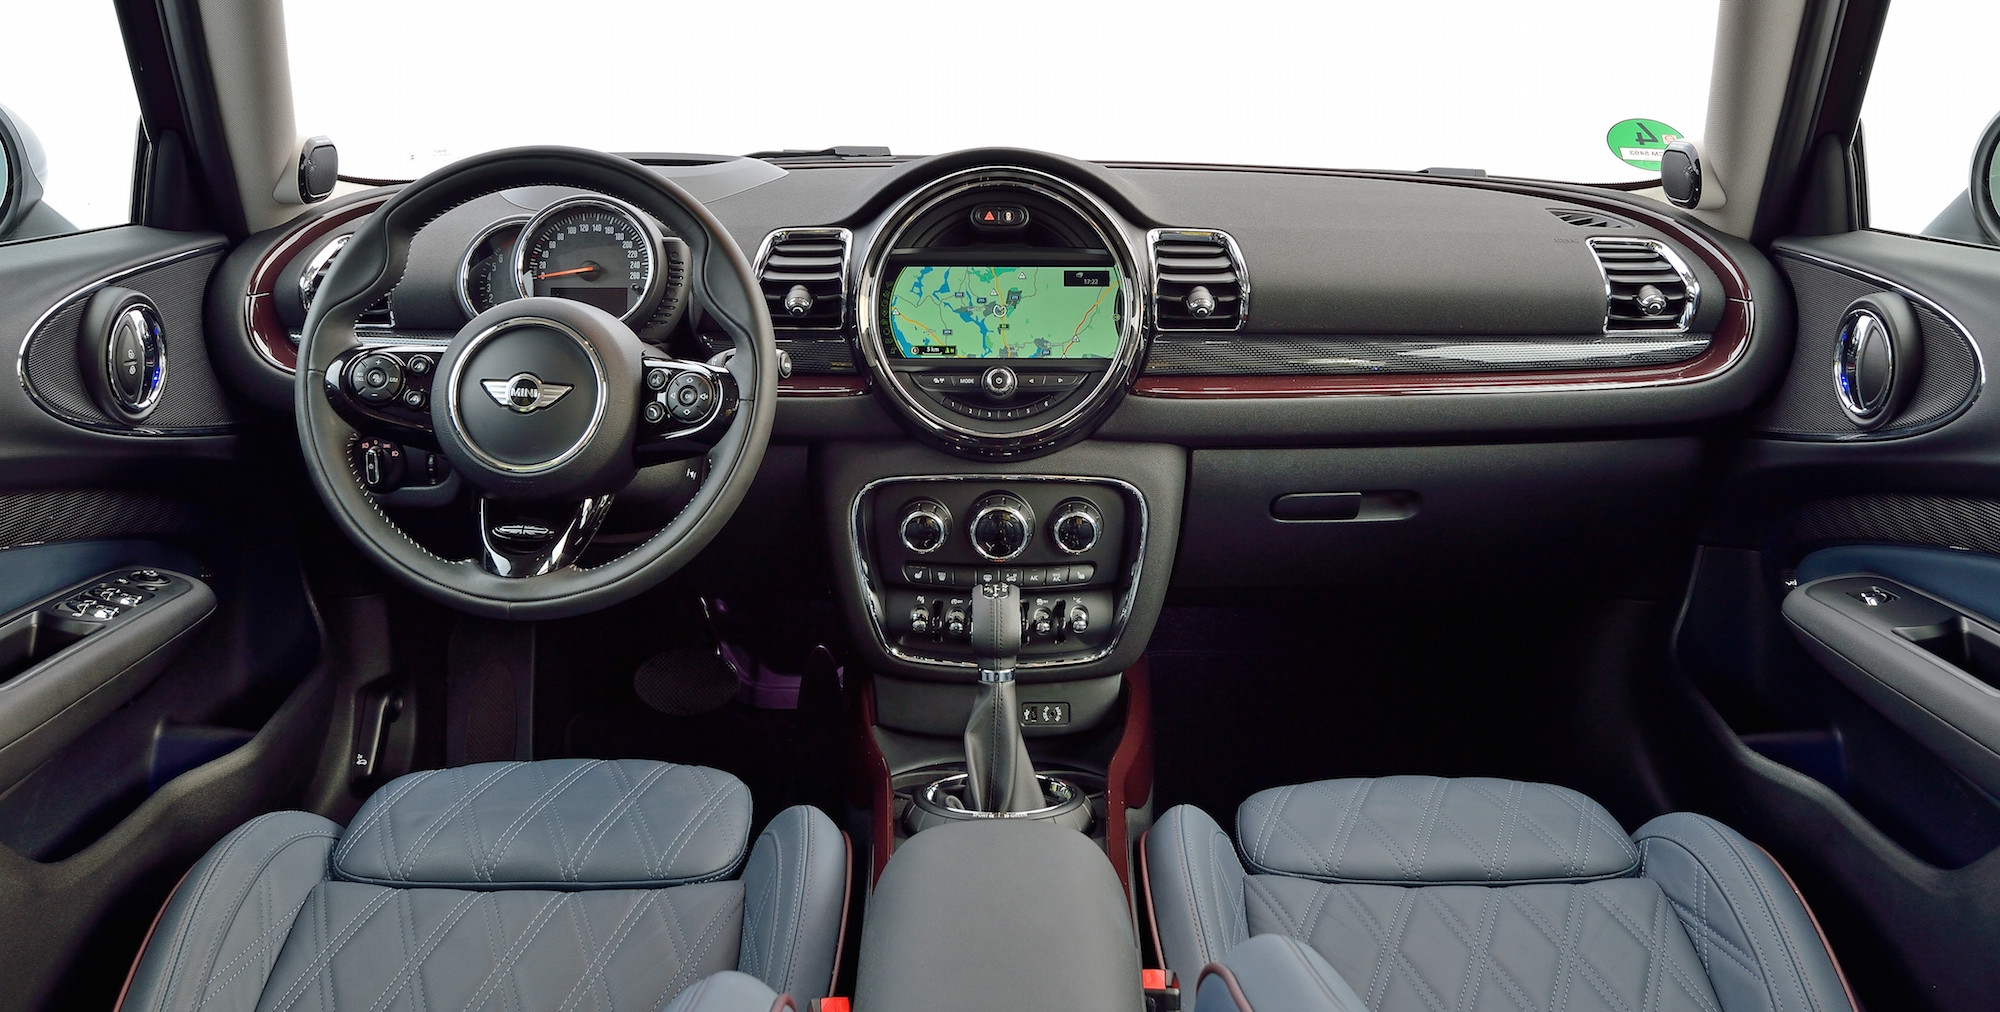 2016 Mini Cooper S Clubman Dashboard Interior (Photo 6 of 17)